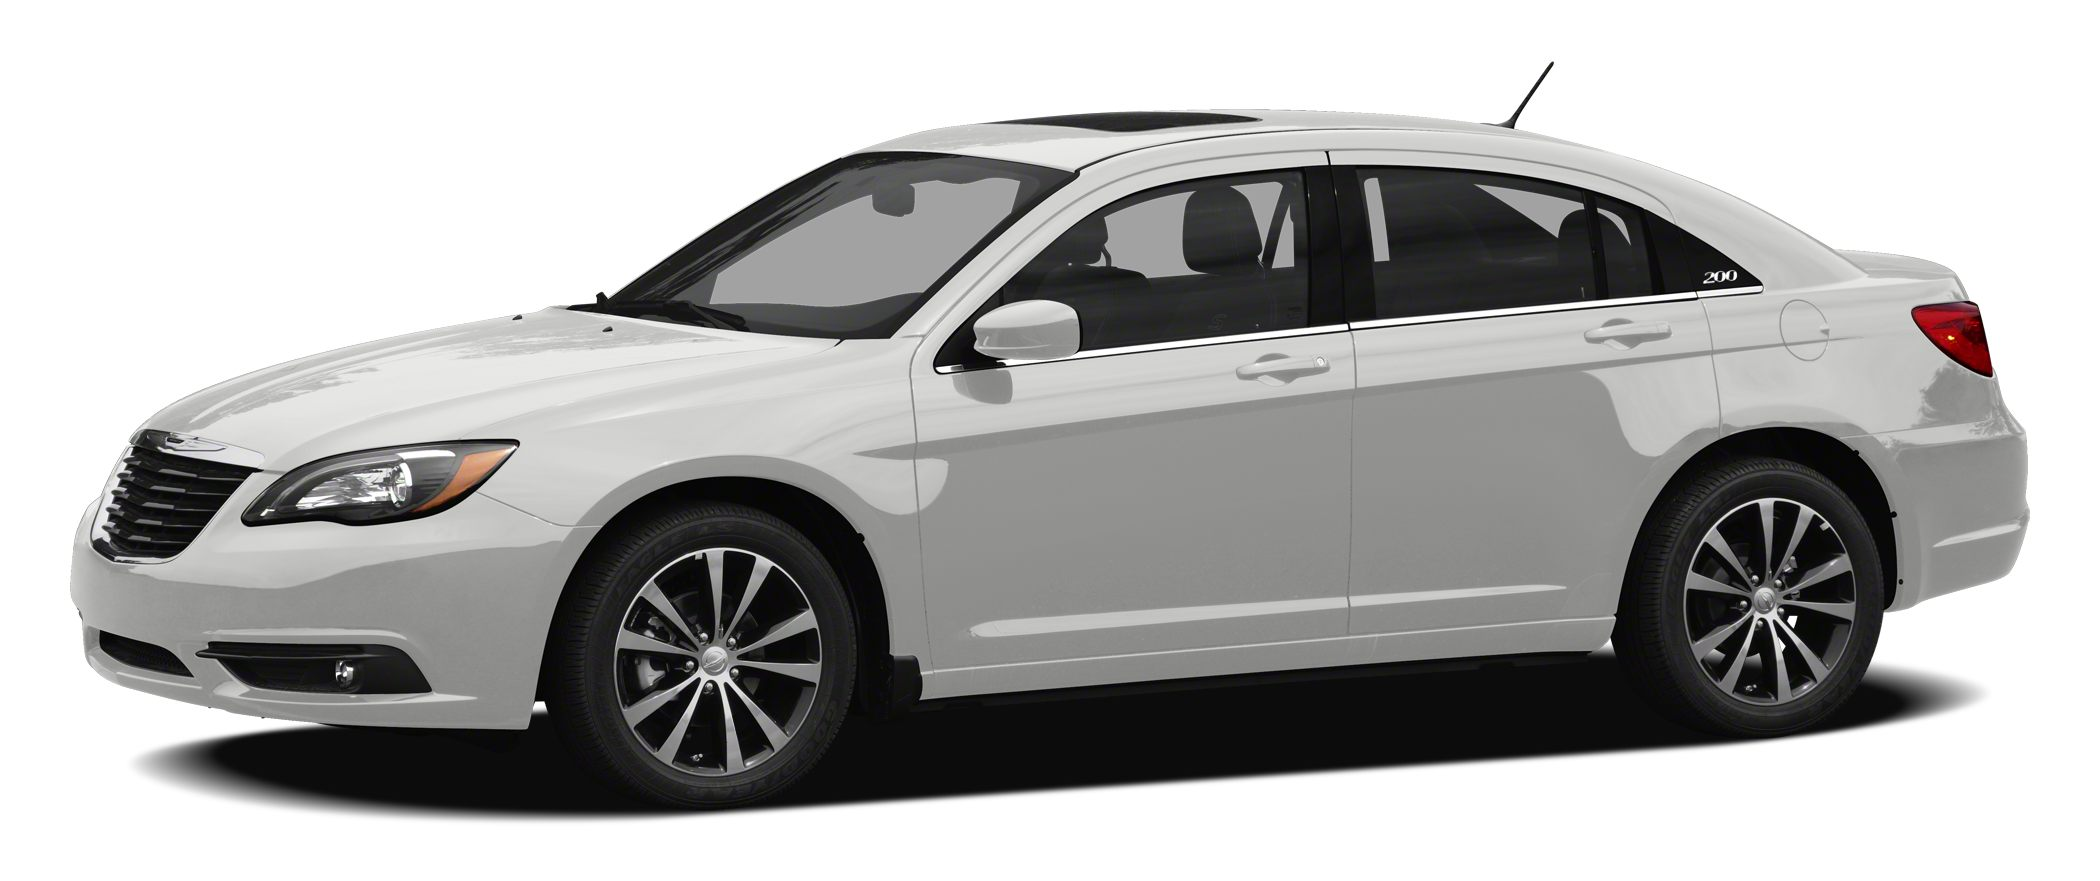 2012 Chrysler 200 S At Advantage Chrysler you know you are getting a safe and dependable vehicle